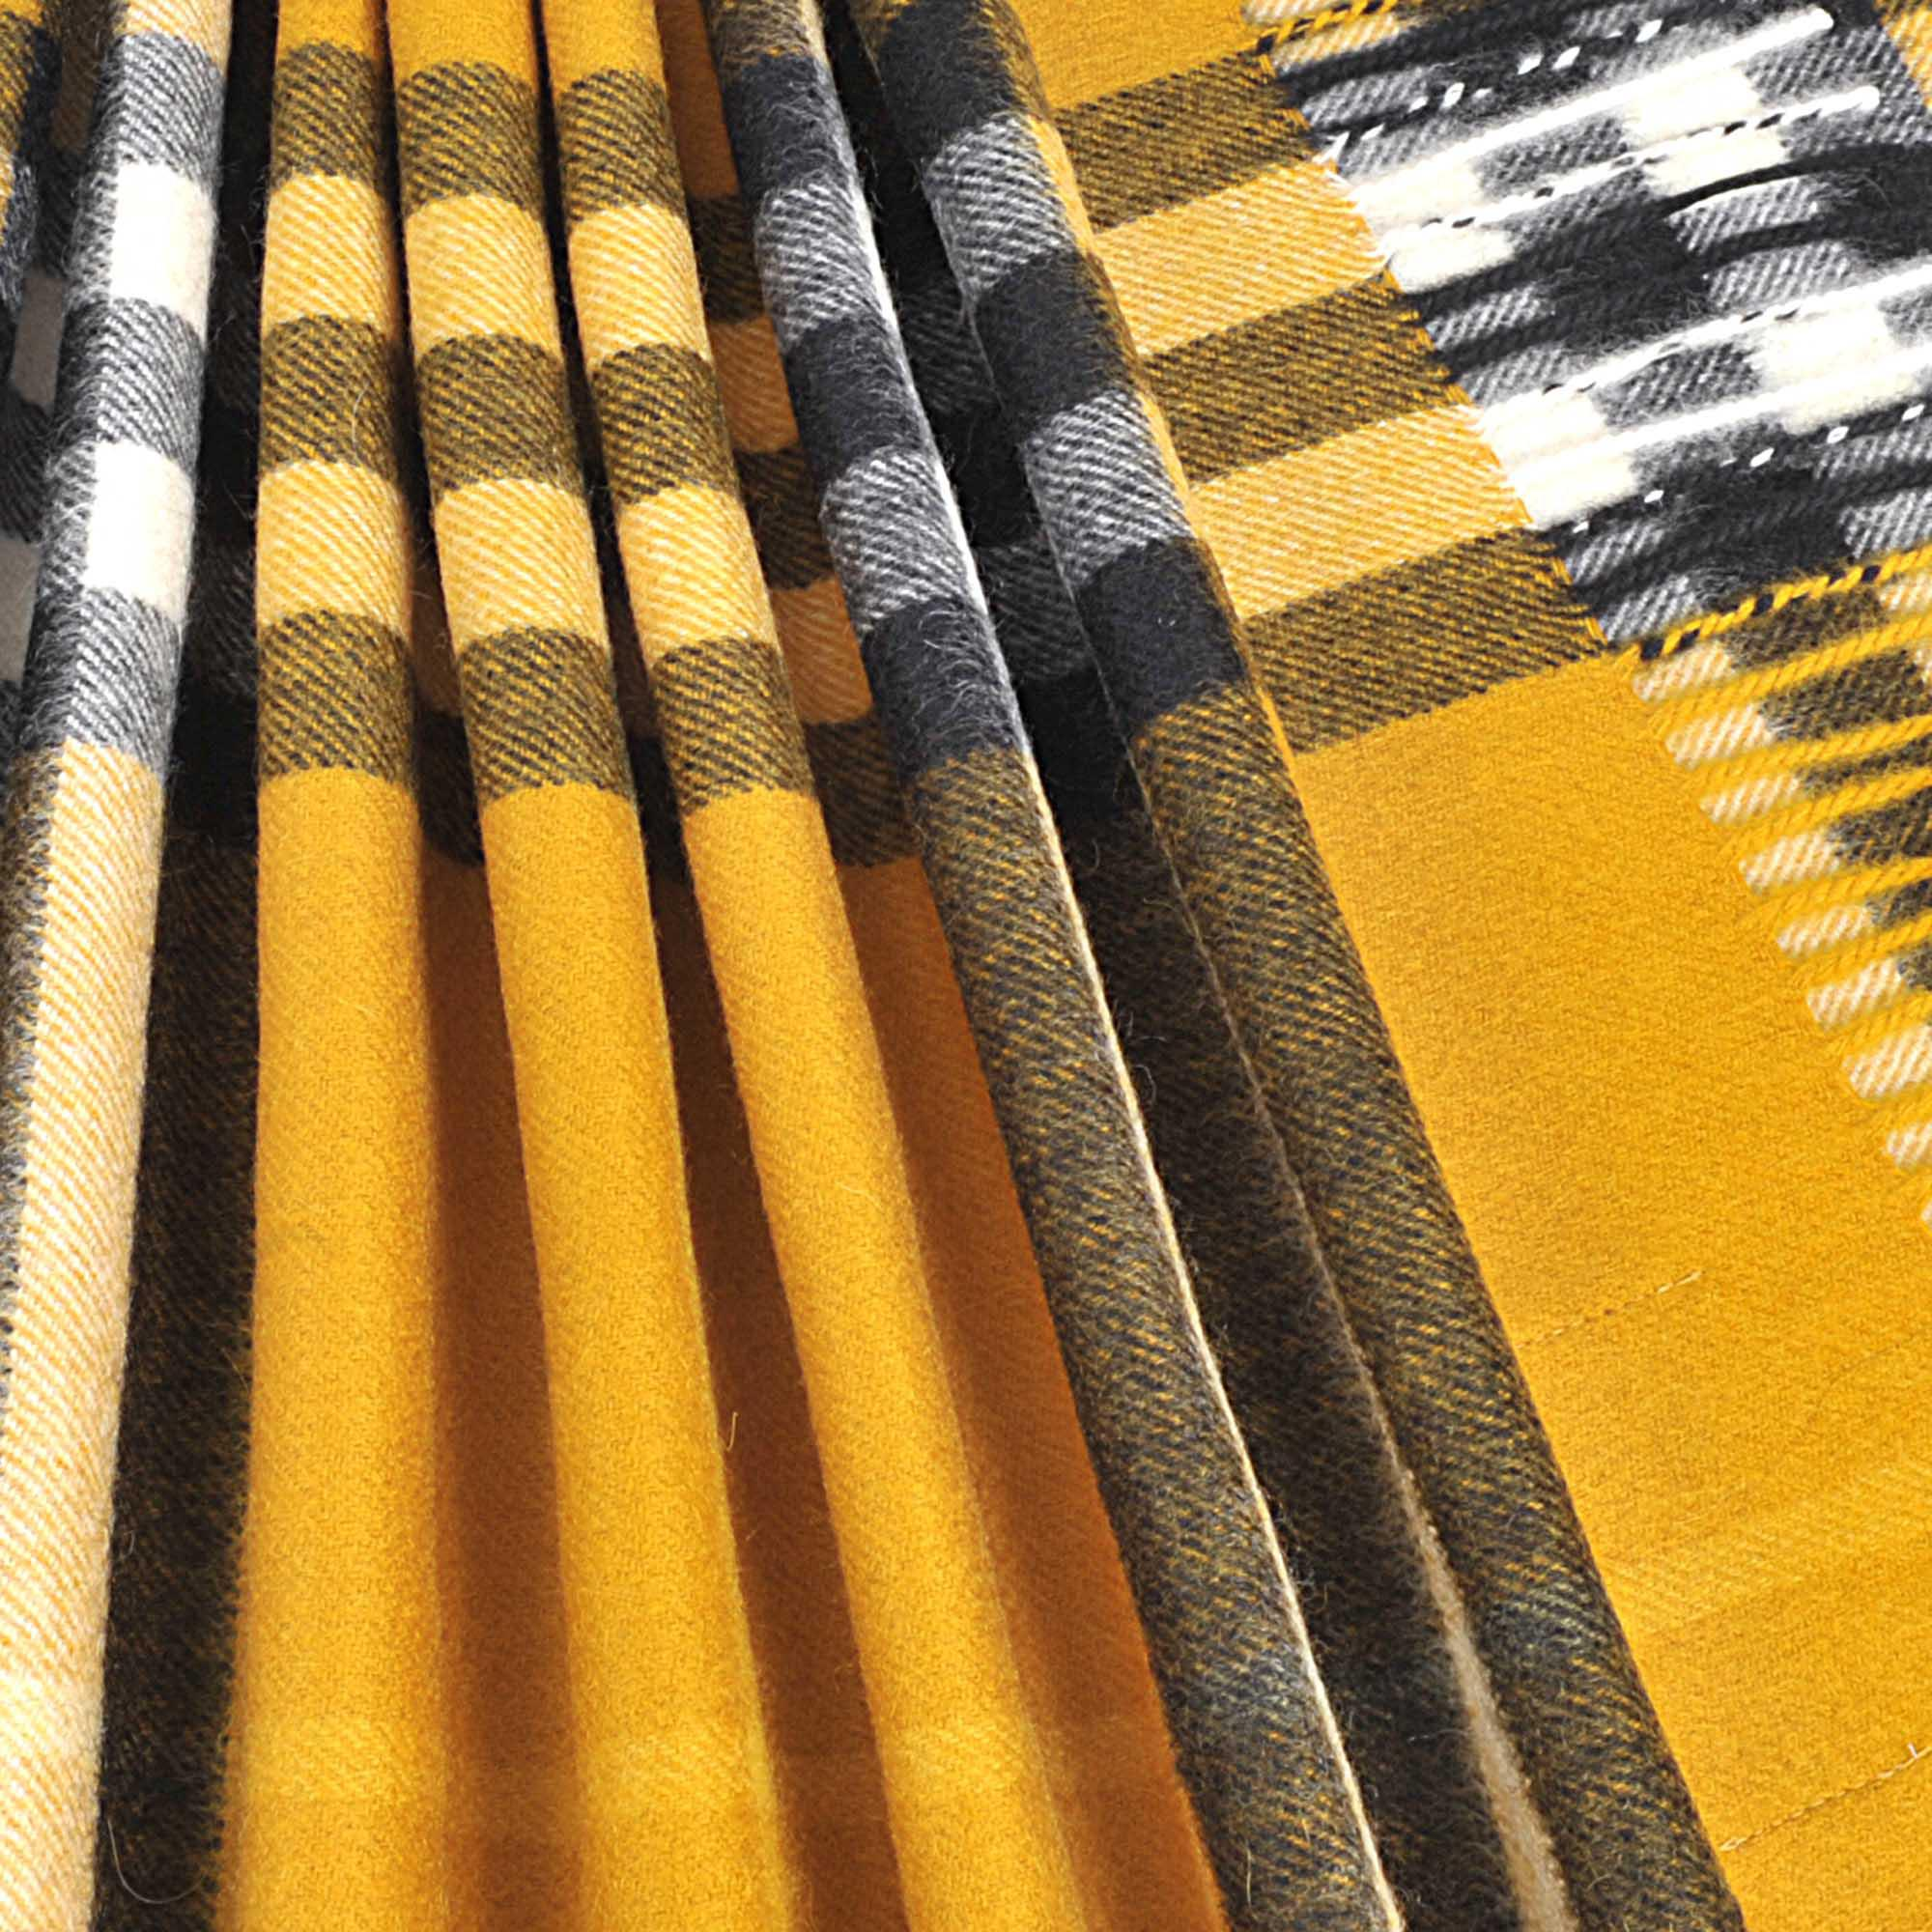 Burberry - Yellow Giant Icon Check Cashmere Scarf - Lyst. View fullscreen 6d288c1c3517d